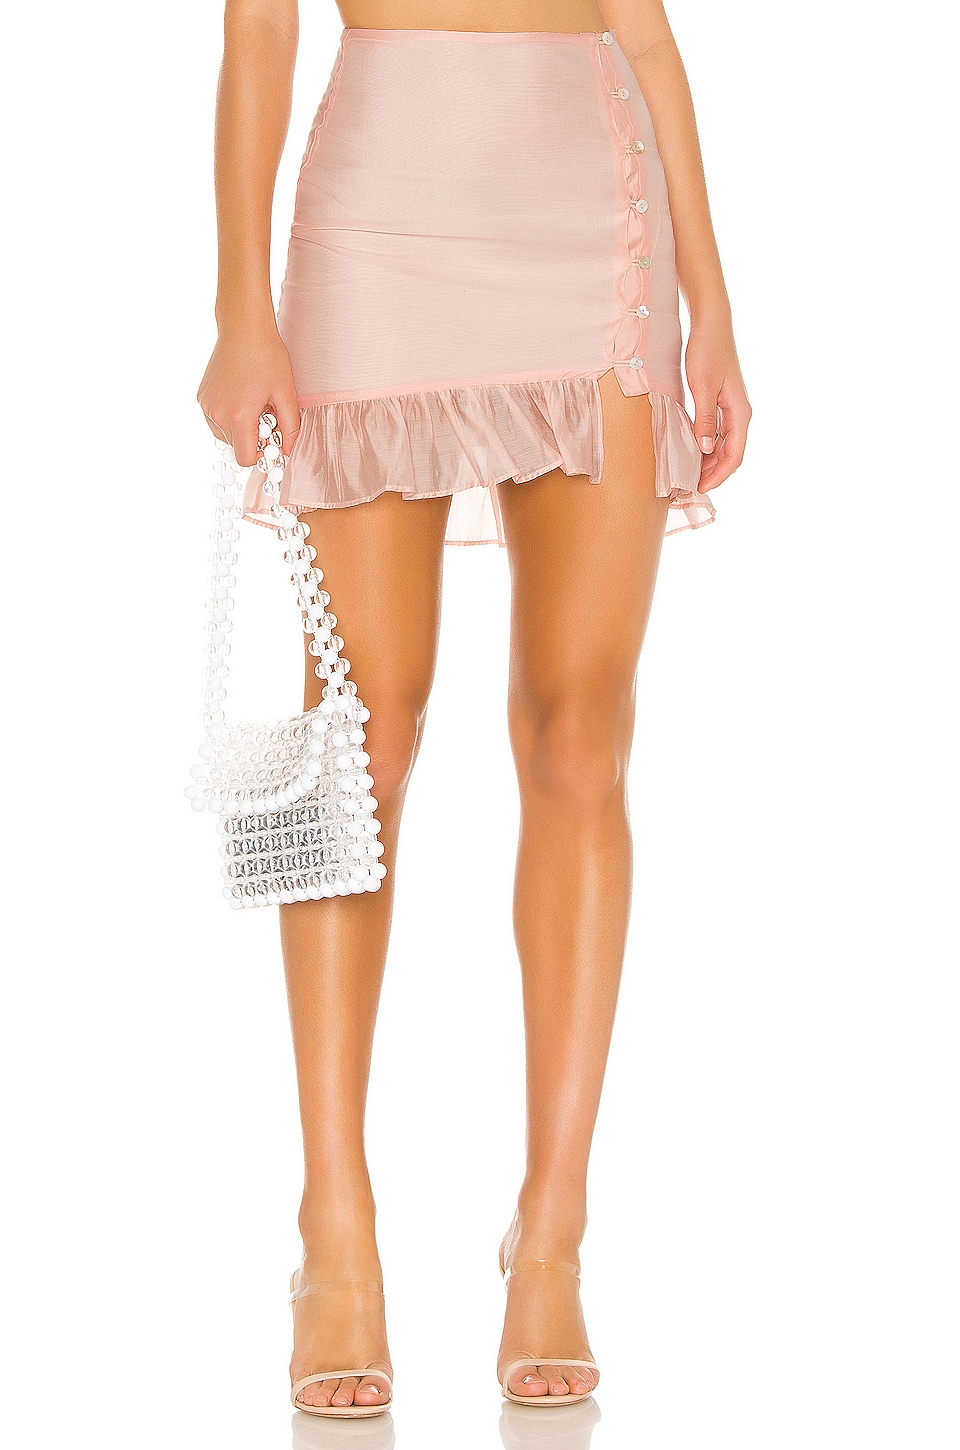 Privacy Please Lou Mini Skirt in Soft Pink